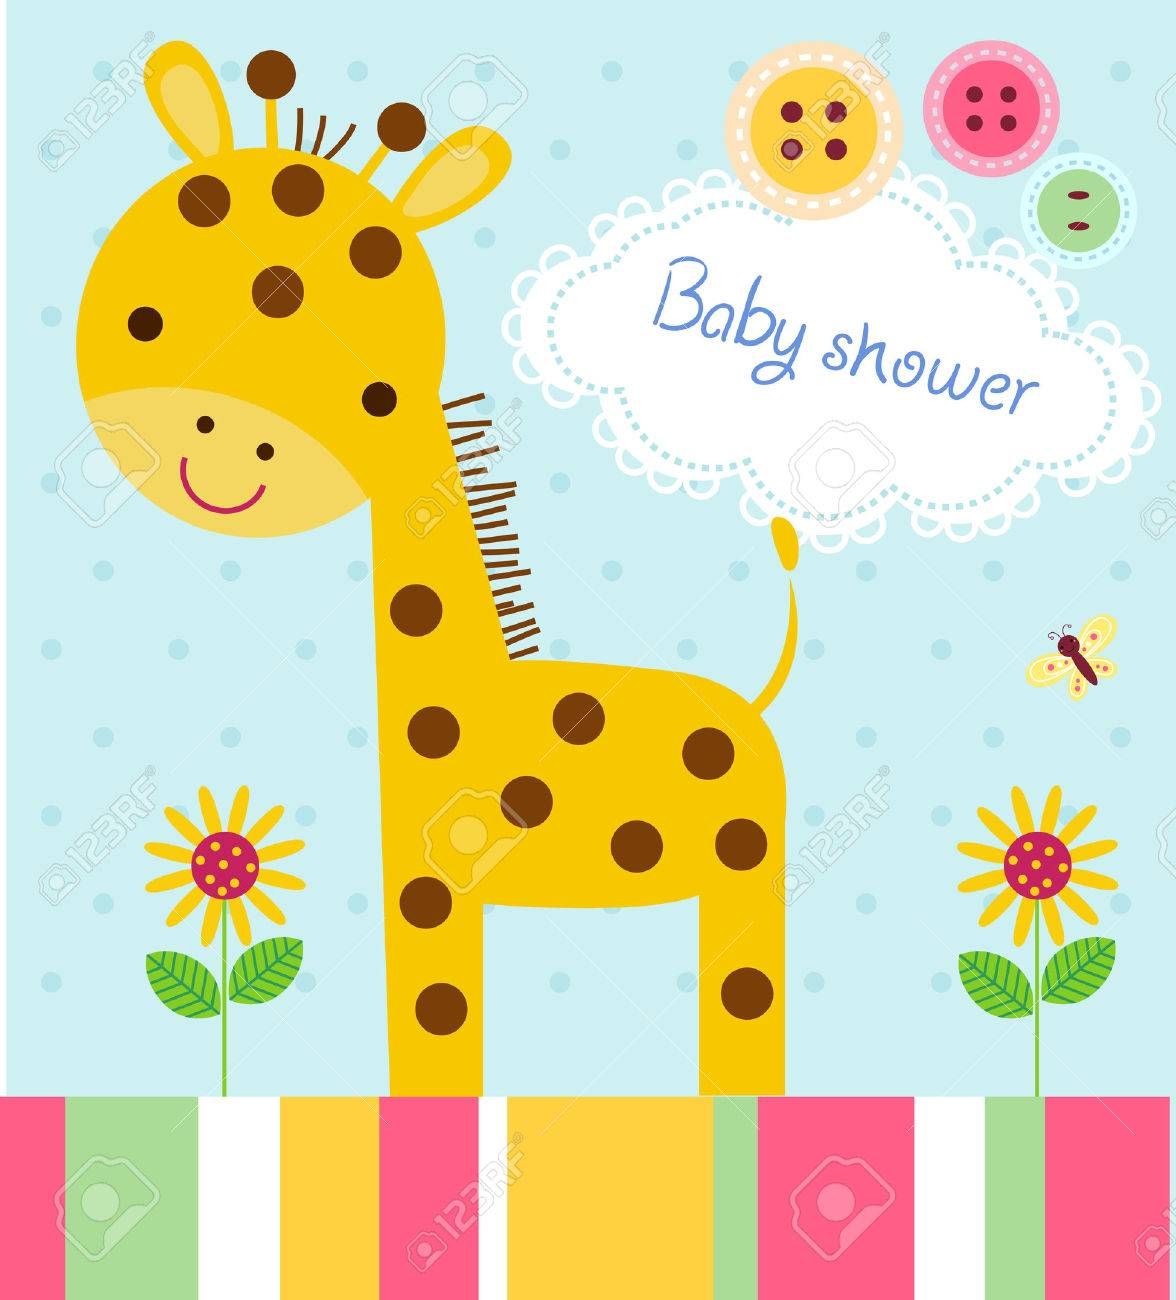 Cute Baby Shower Birthday Invitation Card With Giraffe Royalty Free ...